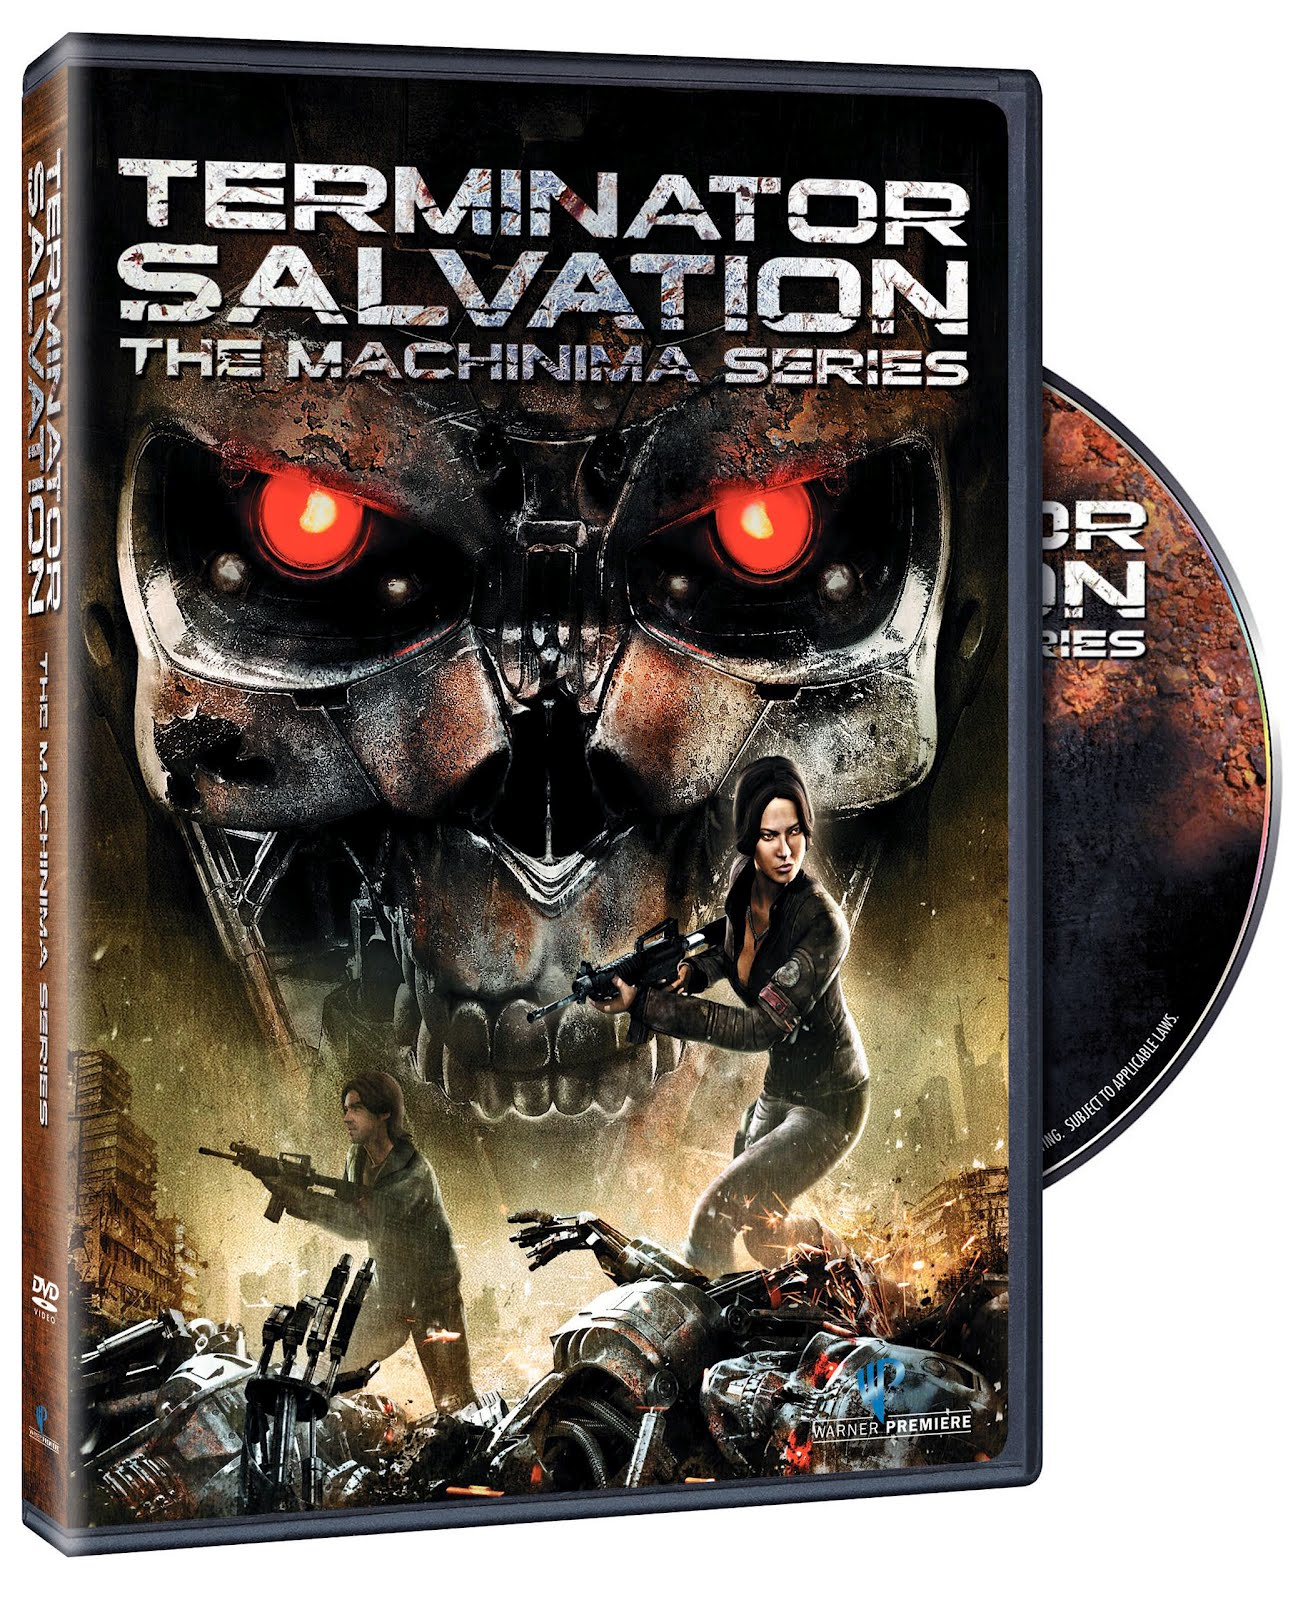 Terminator Salvation DVD Case Box